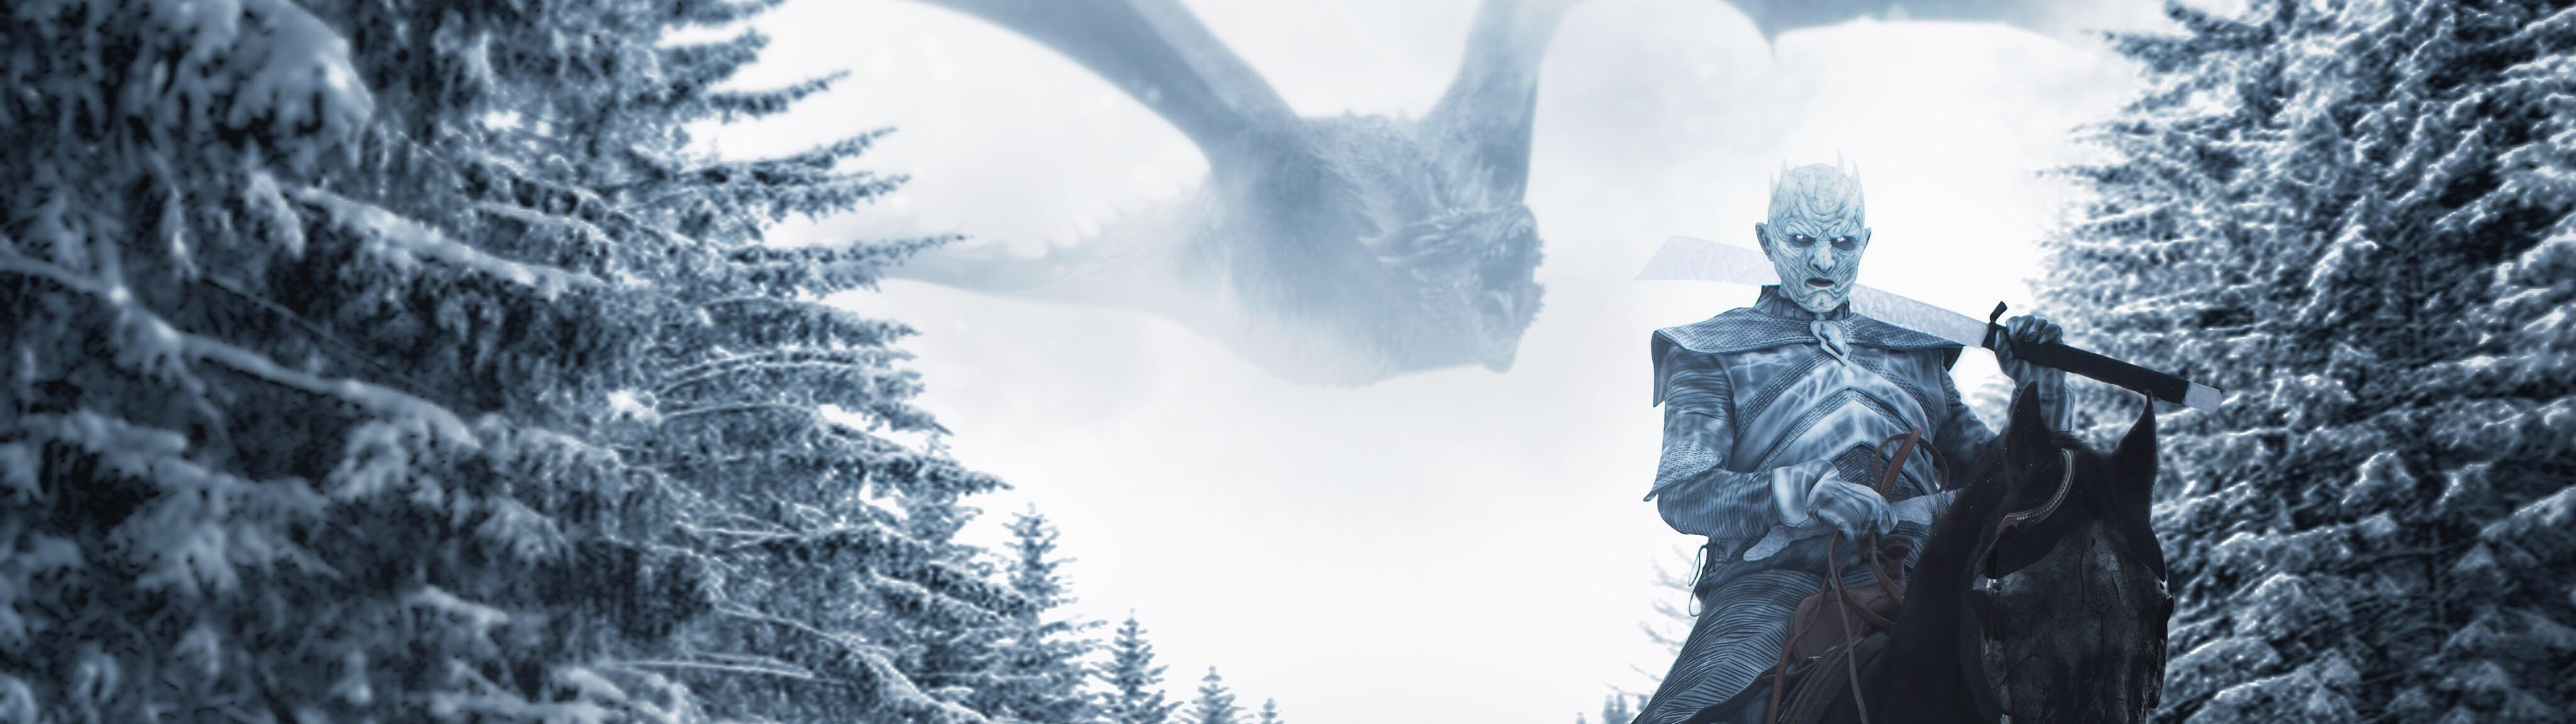 Night King Game Of Thrones Season 8 4k Wallpaper 66